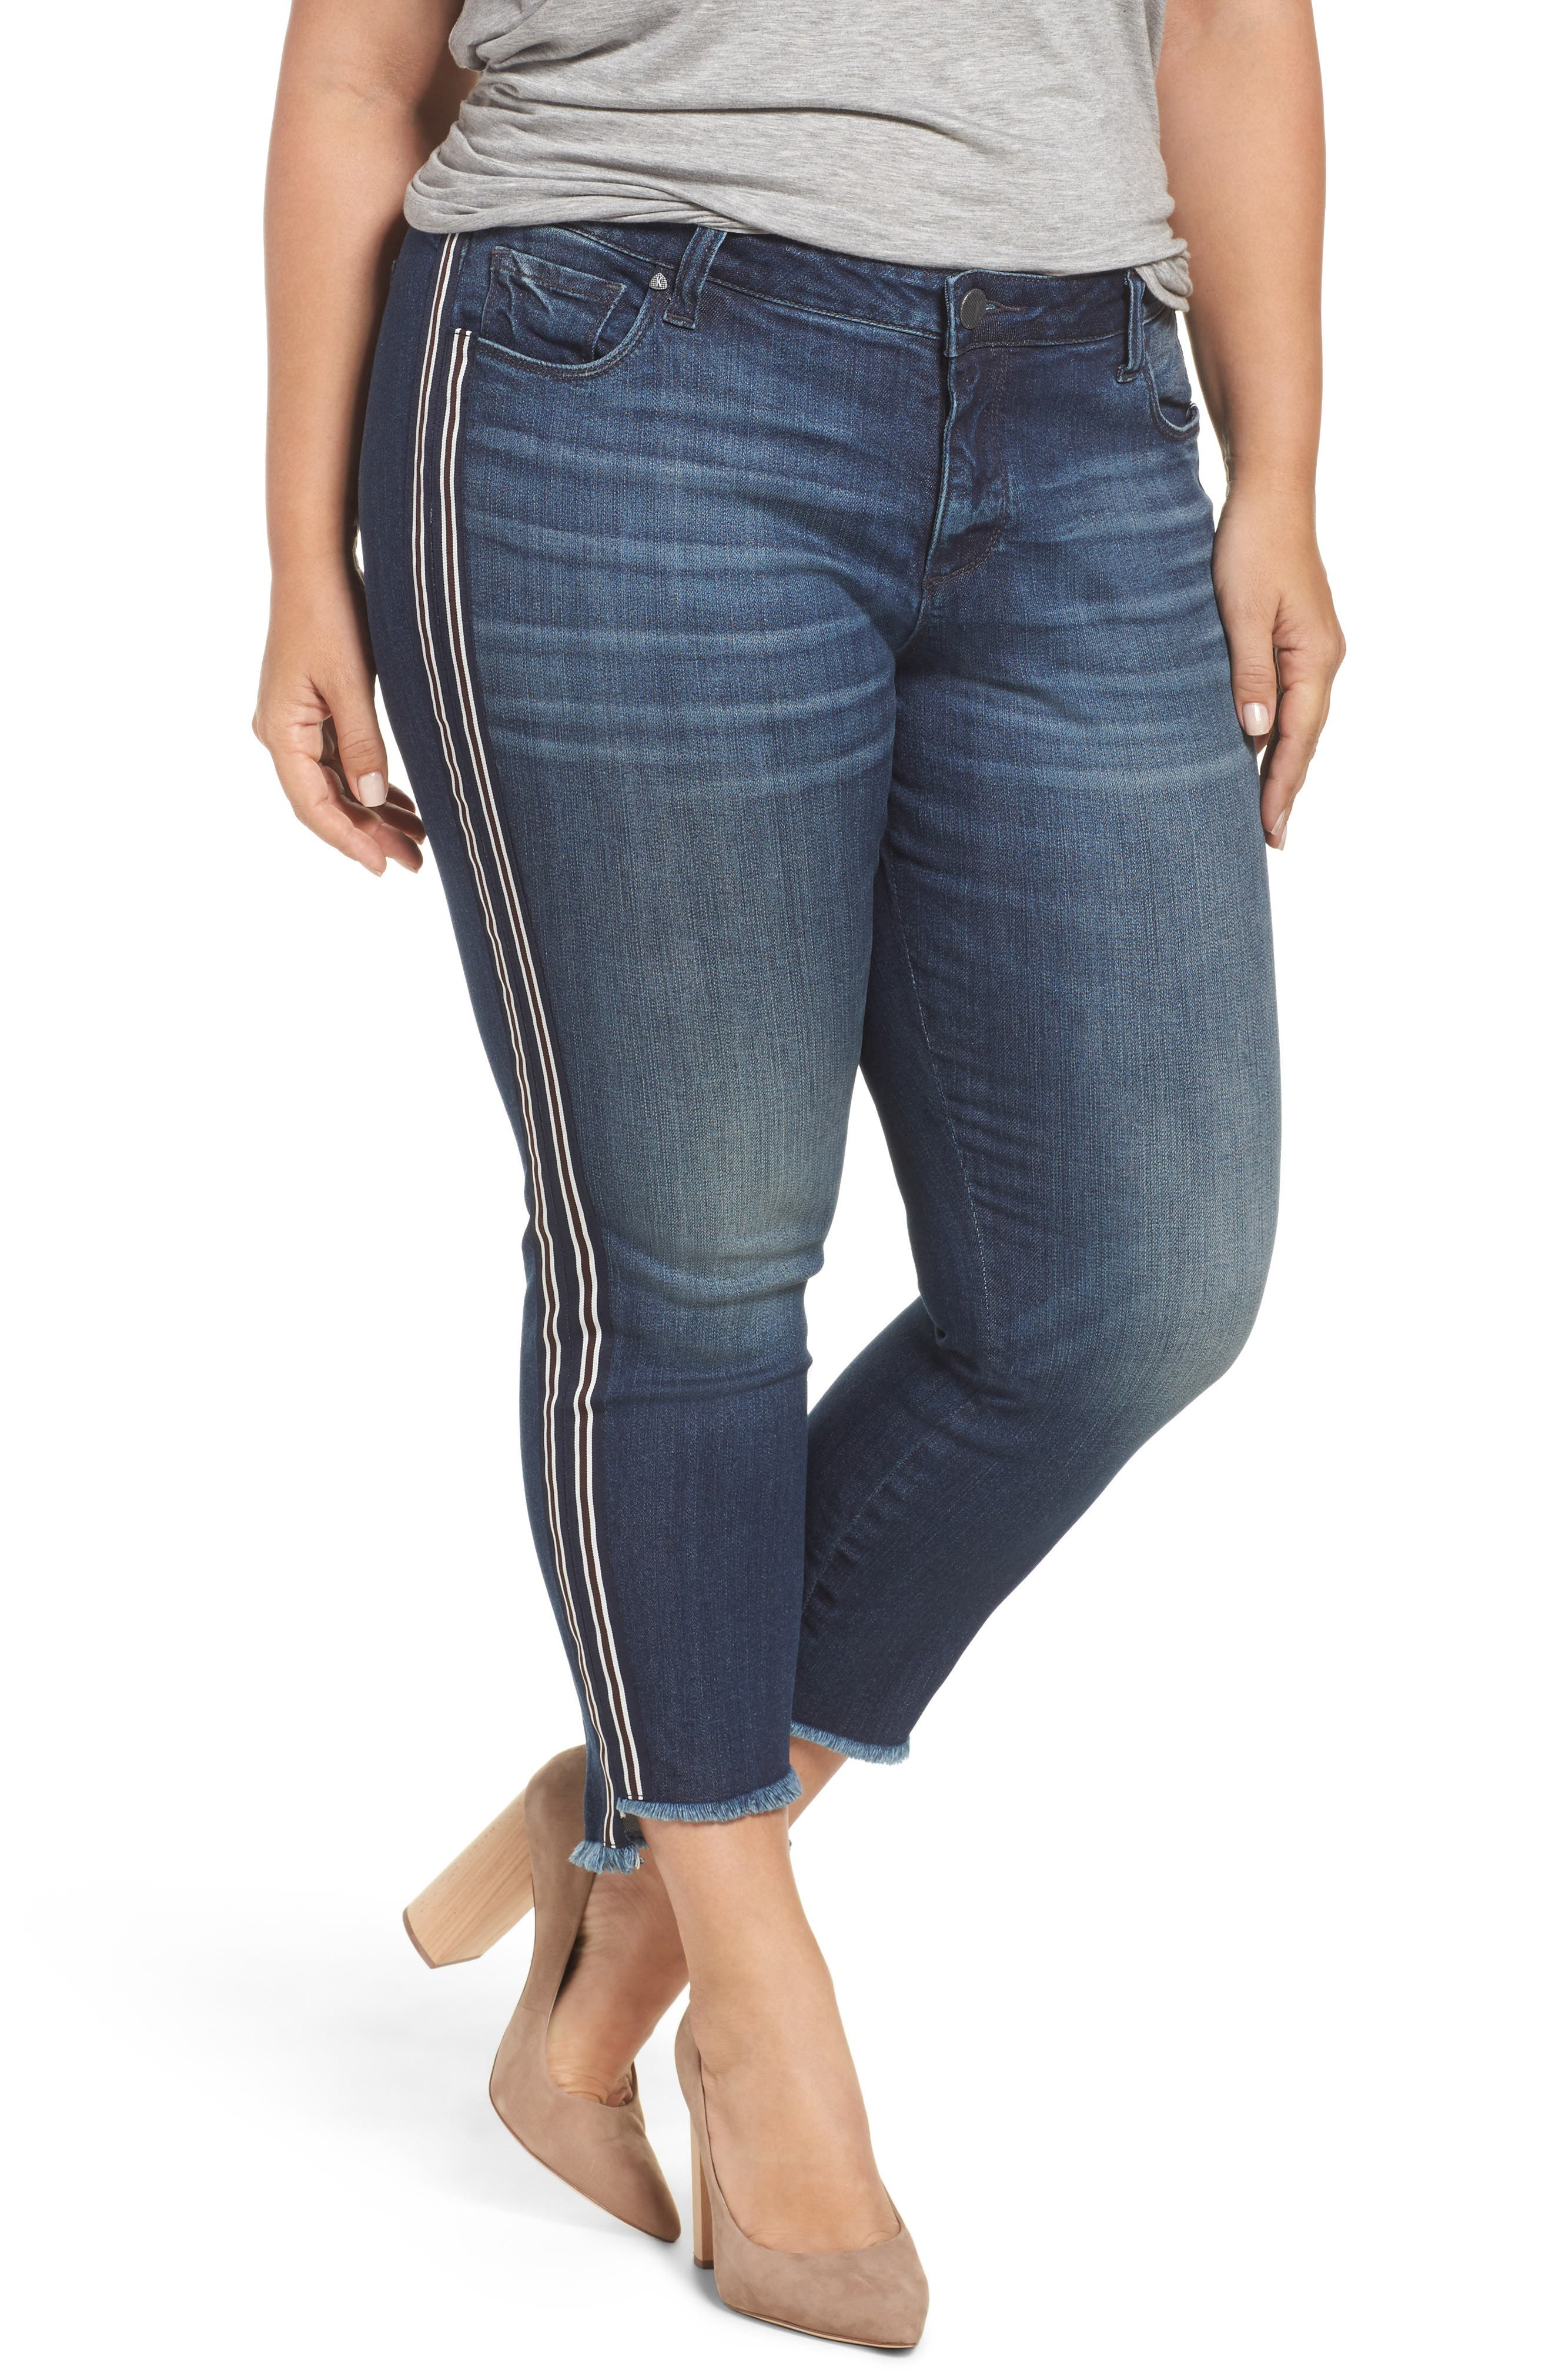 Alternate Image 1 Selected - KUT from the Kloth Reese Side Stripe Uneven Ankle Jeans (Analyzed) (Plus Size)